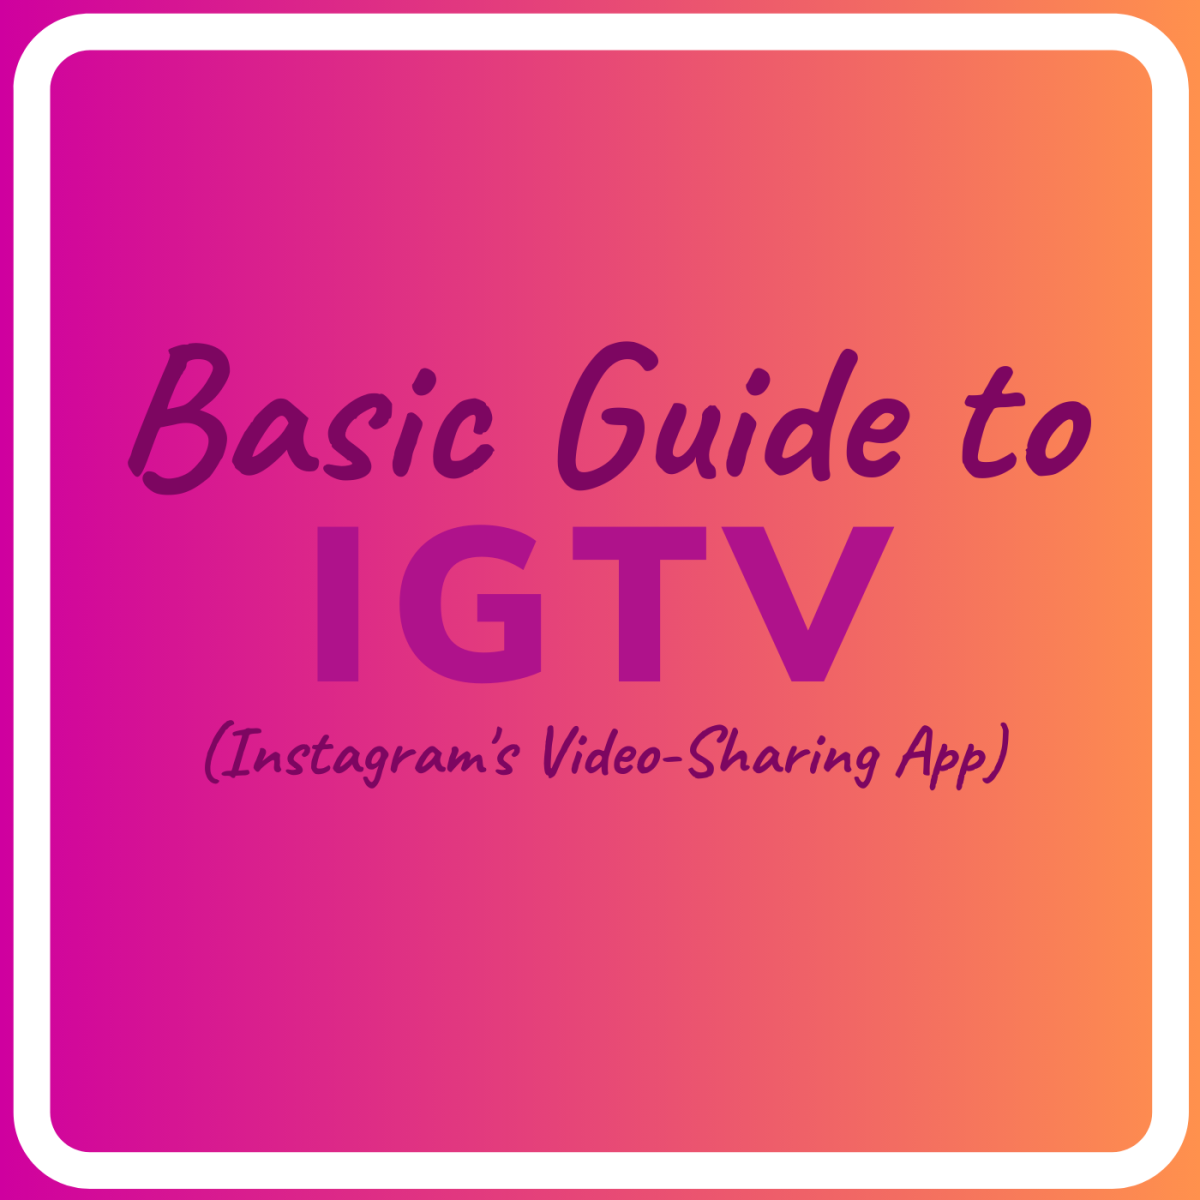 Learn how to get started with IGTV and use it most effectively.